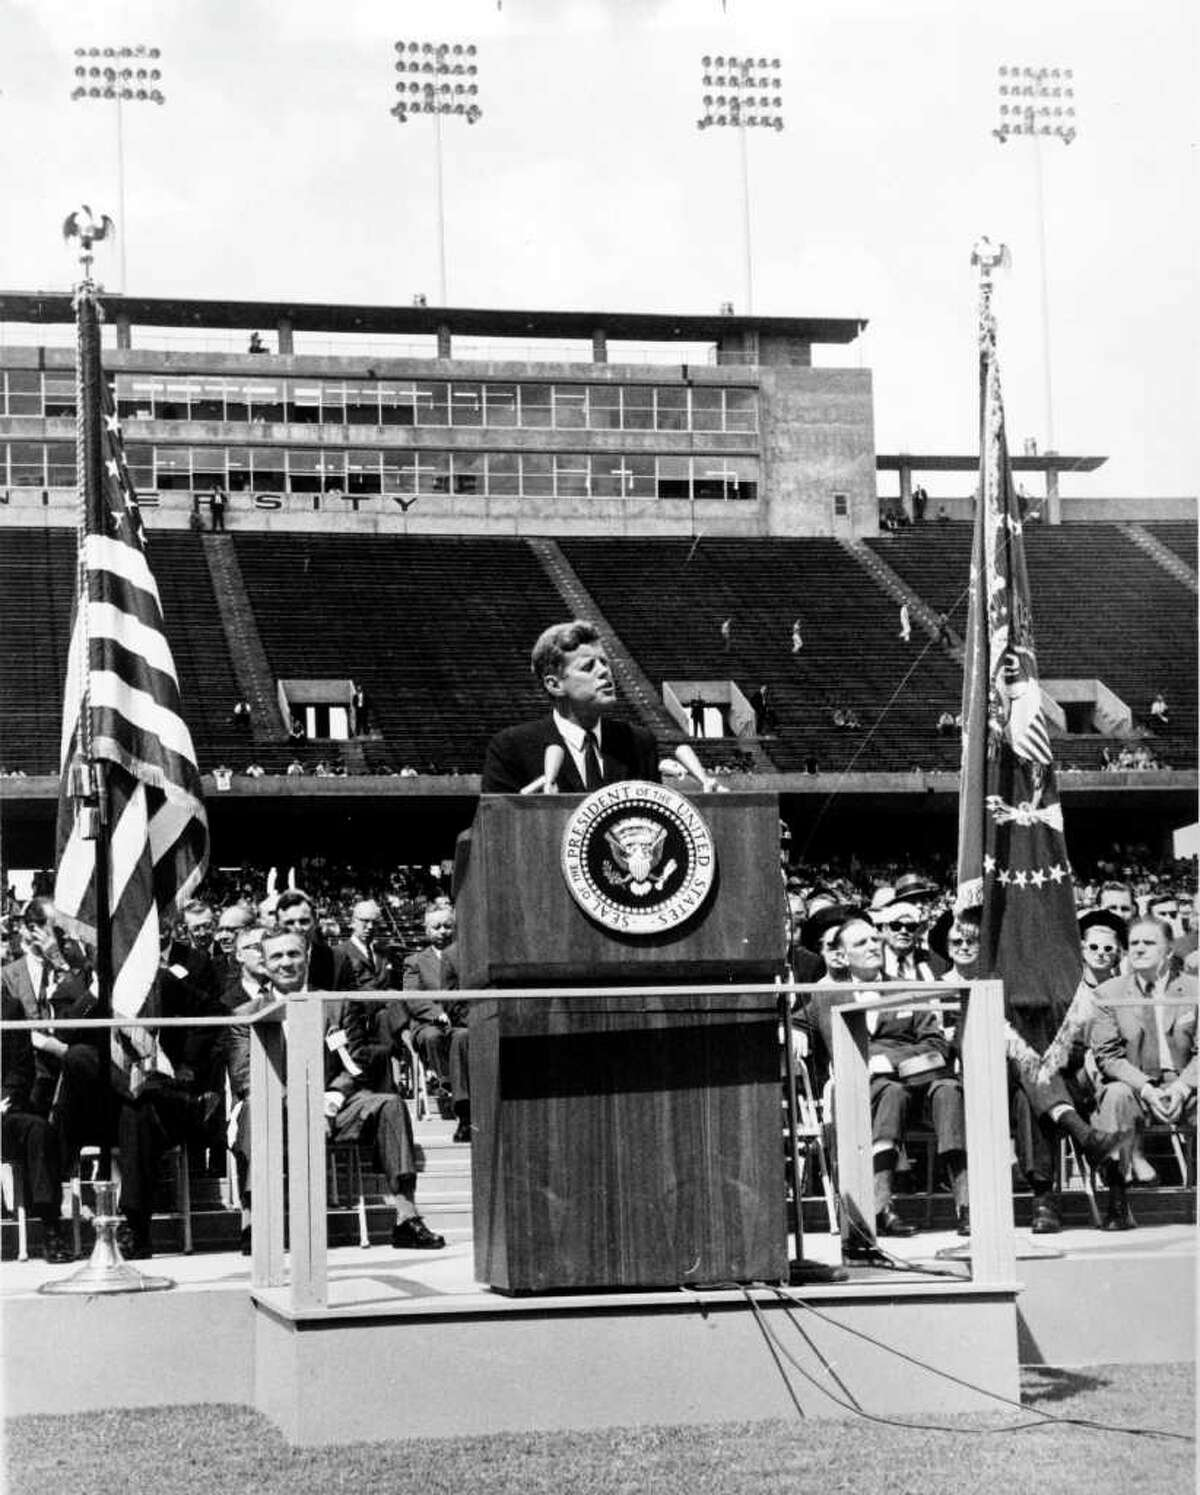 """JFK speaks at Rice At Rice Stadium in 1962, President John F. Kennedy announced plans for the U.S. to go to the moon. Said Kennedy: """"We meet at a college known for its knowledge at a city known for its progress, in a state known for its strength."""""""